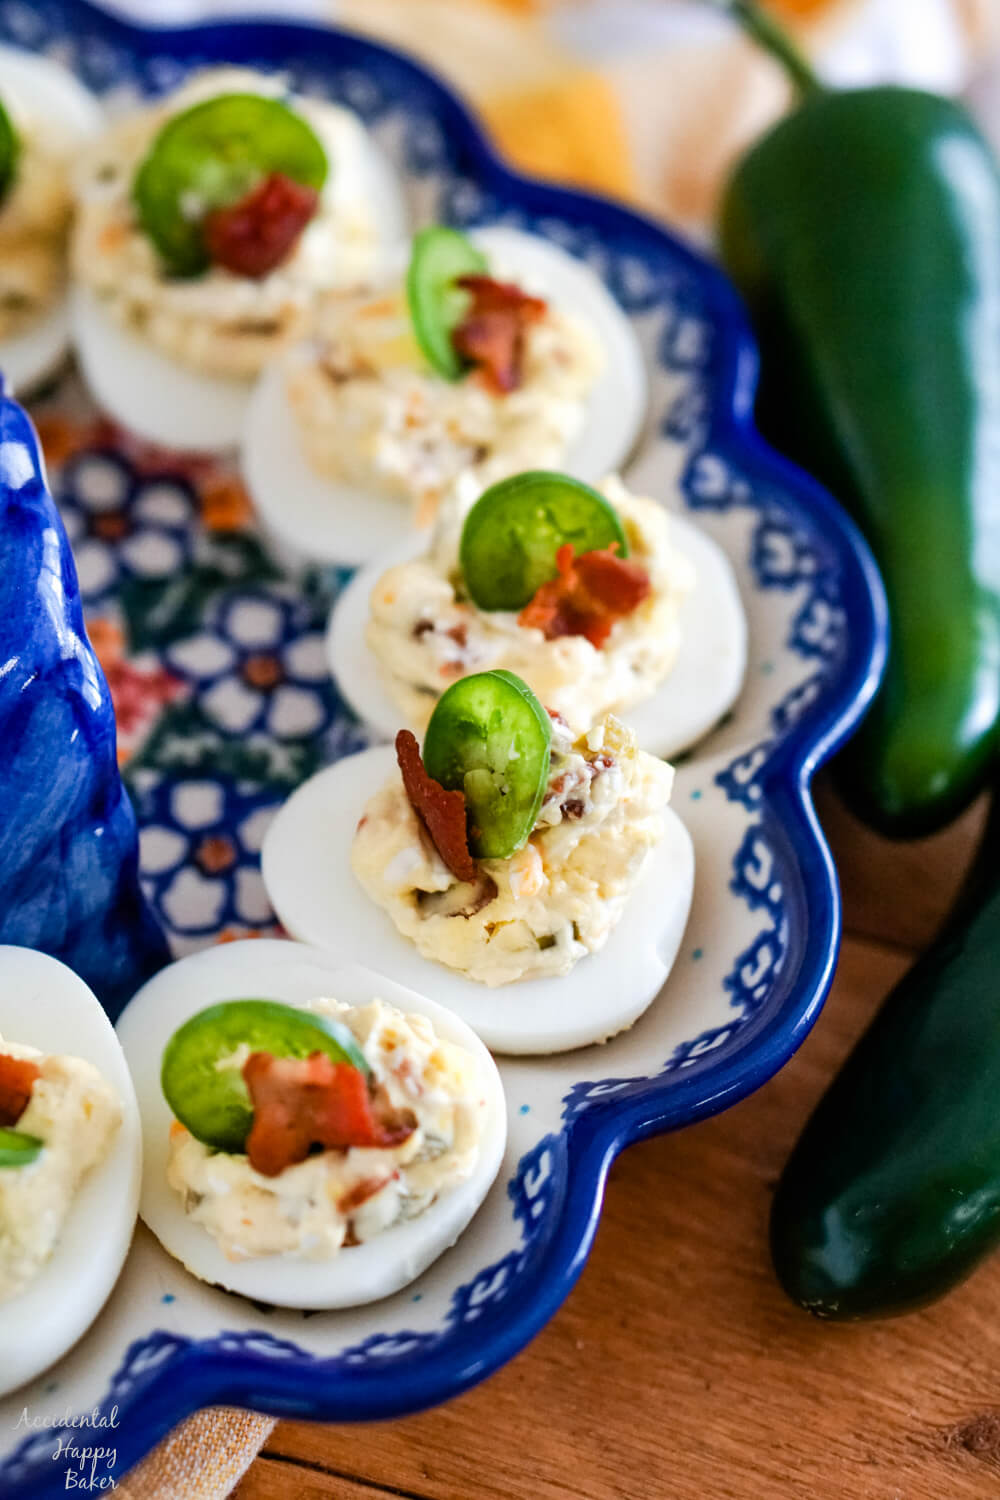 A plate of jalapeno popper deviled eggs garnished with slices of jalapenos sitting next to jalapeno peppers.